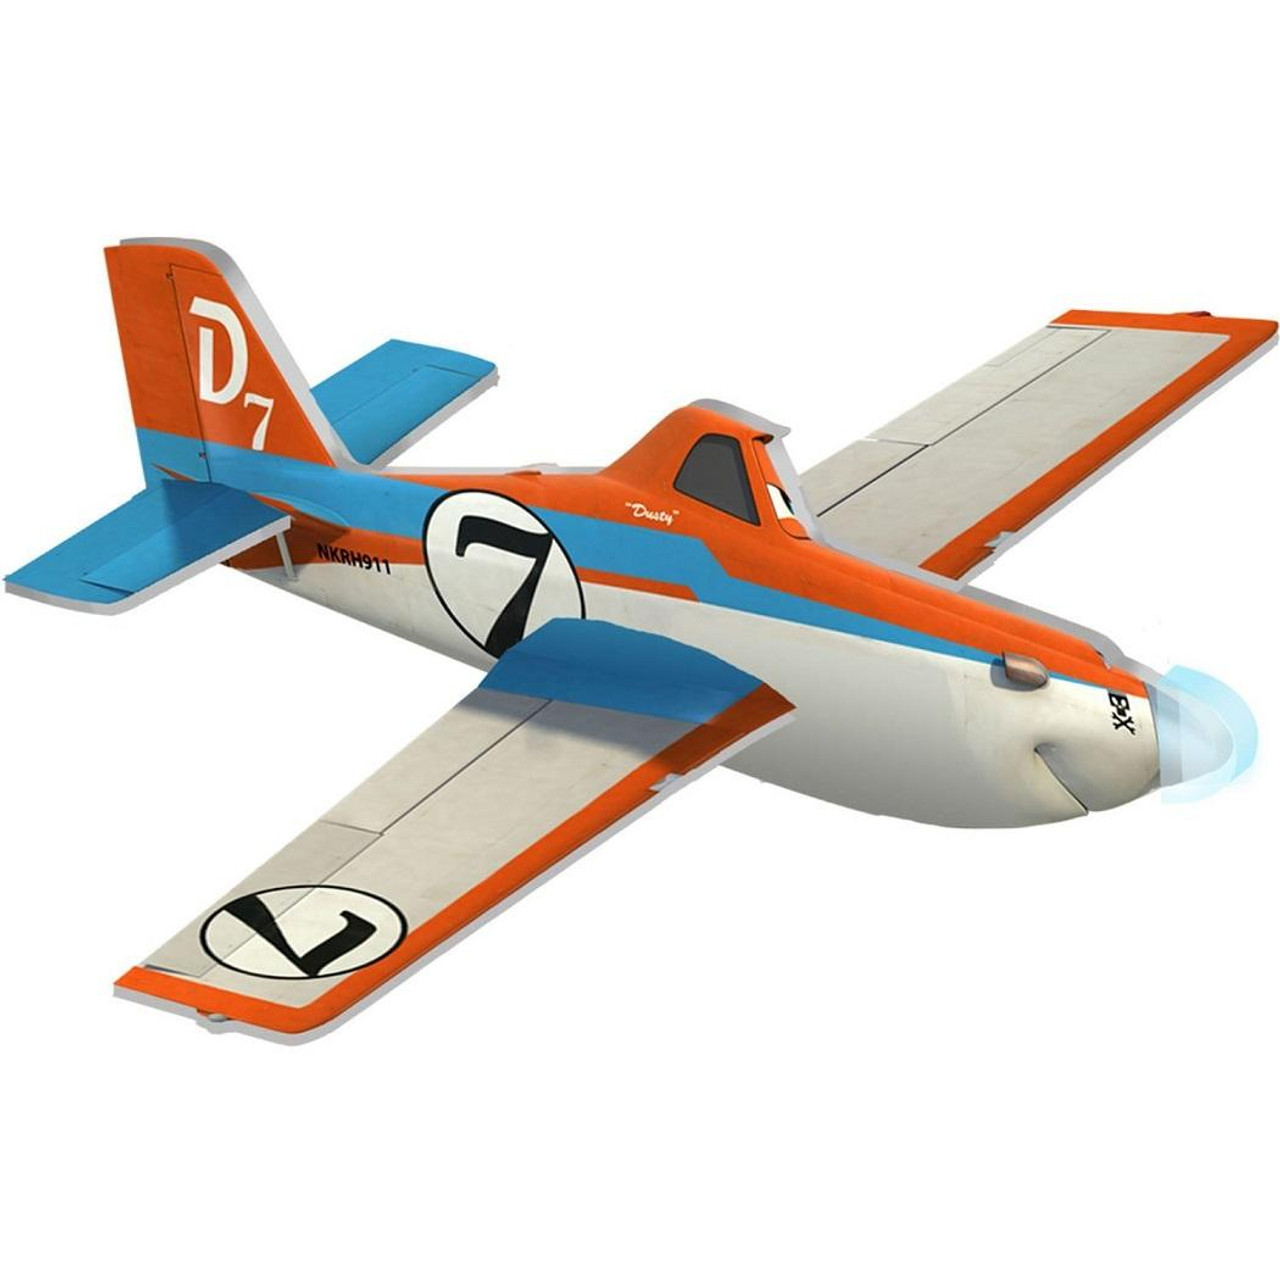 Disney Planes Birthday Party Favor Foam Gliders - Parties Plus